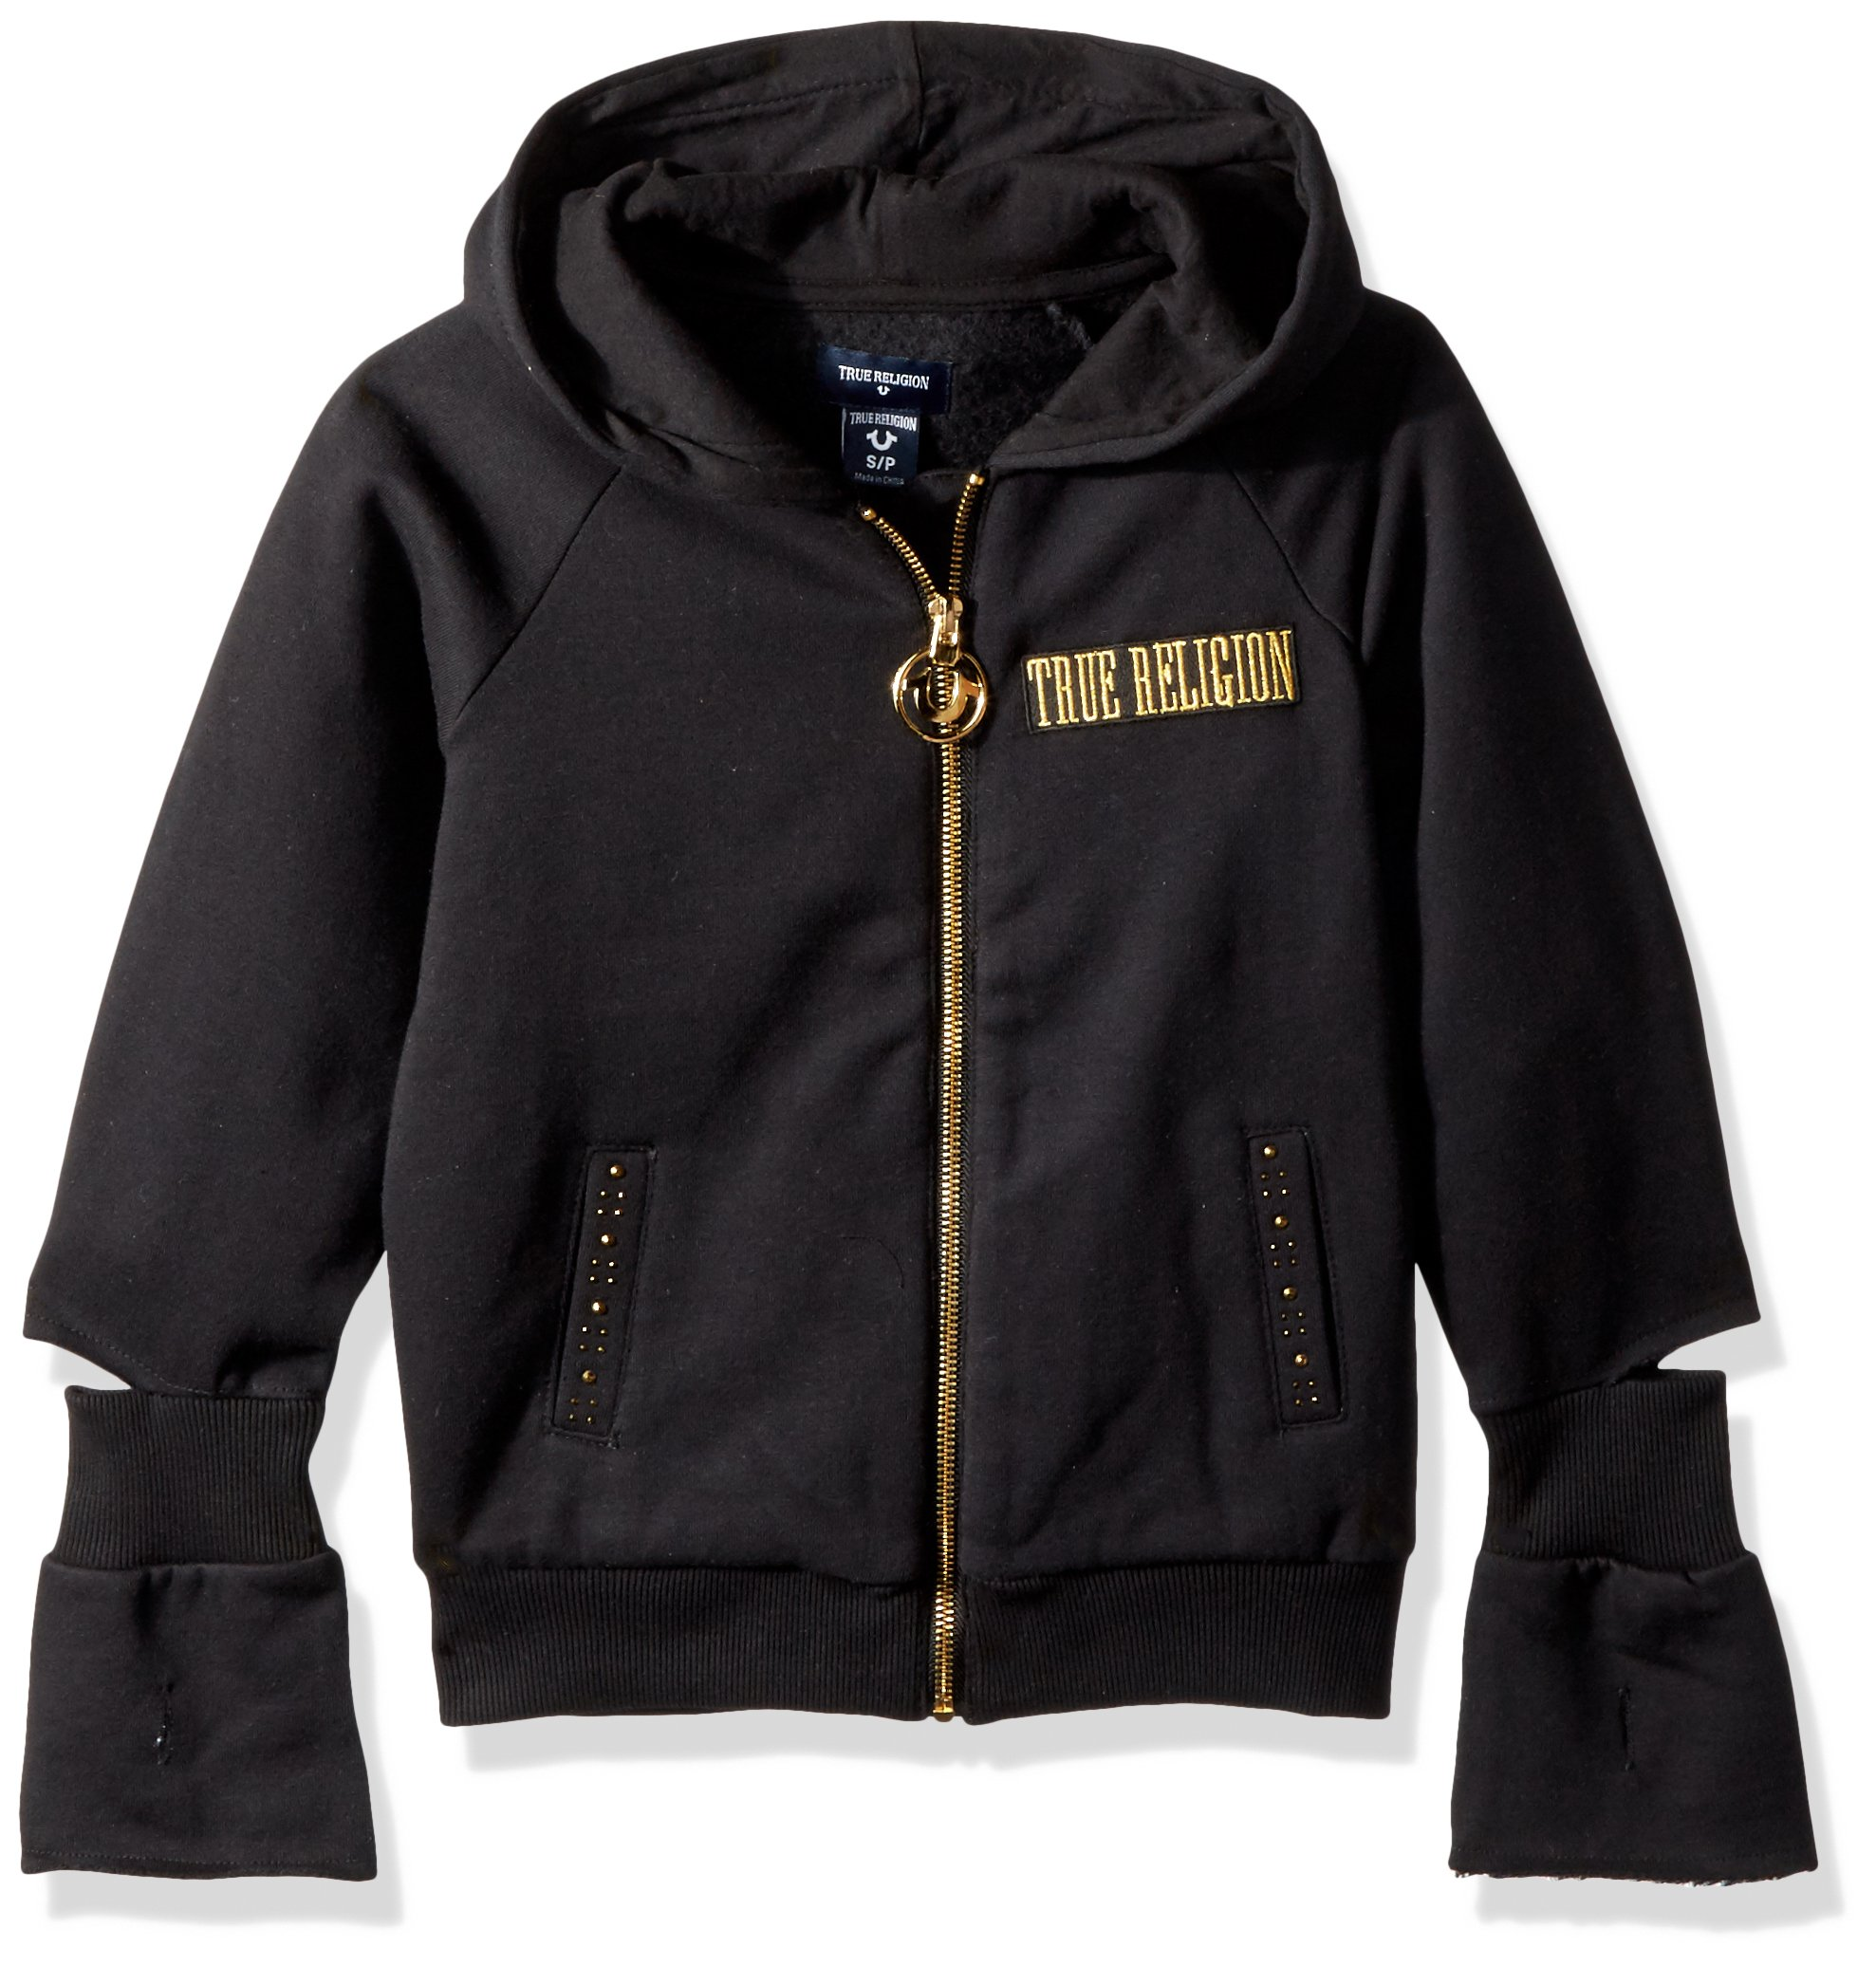 True Religion Girls' Logo Hoodie, Black,  L